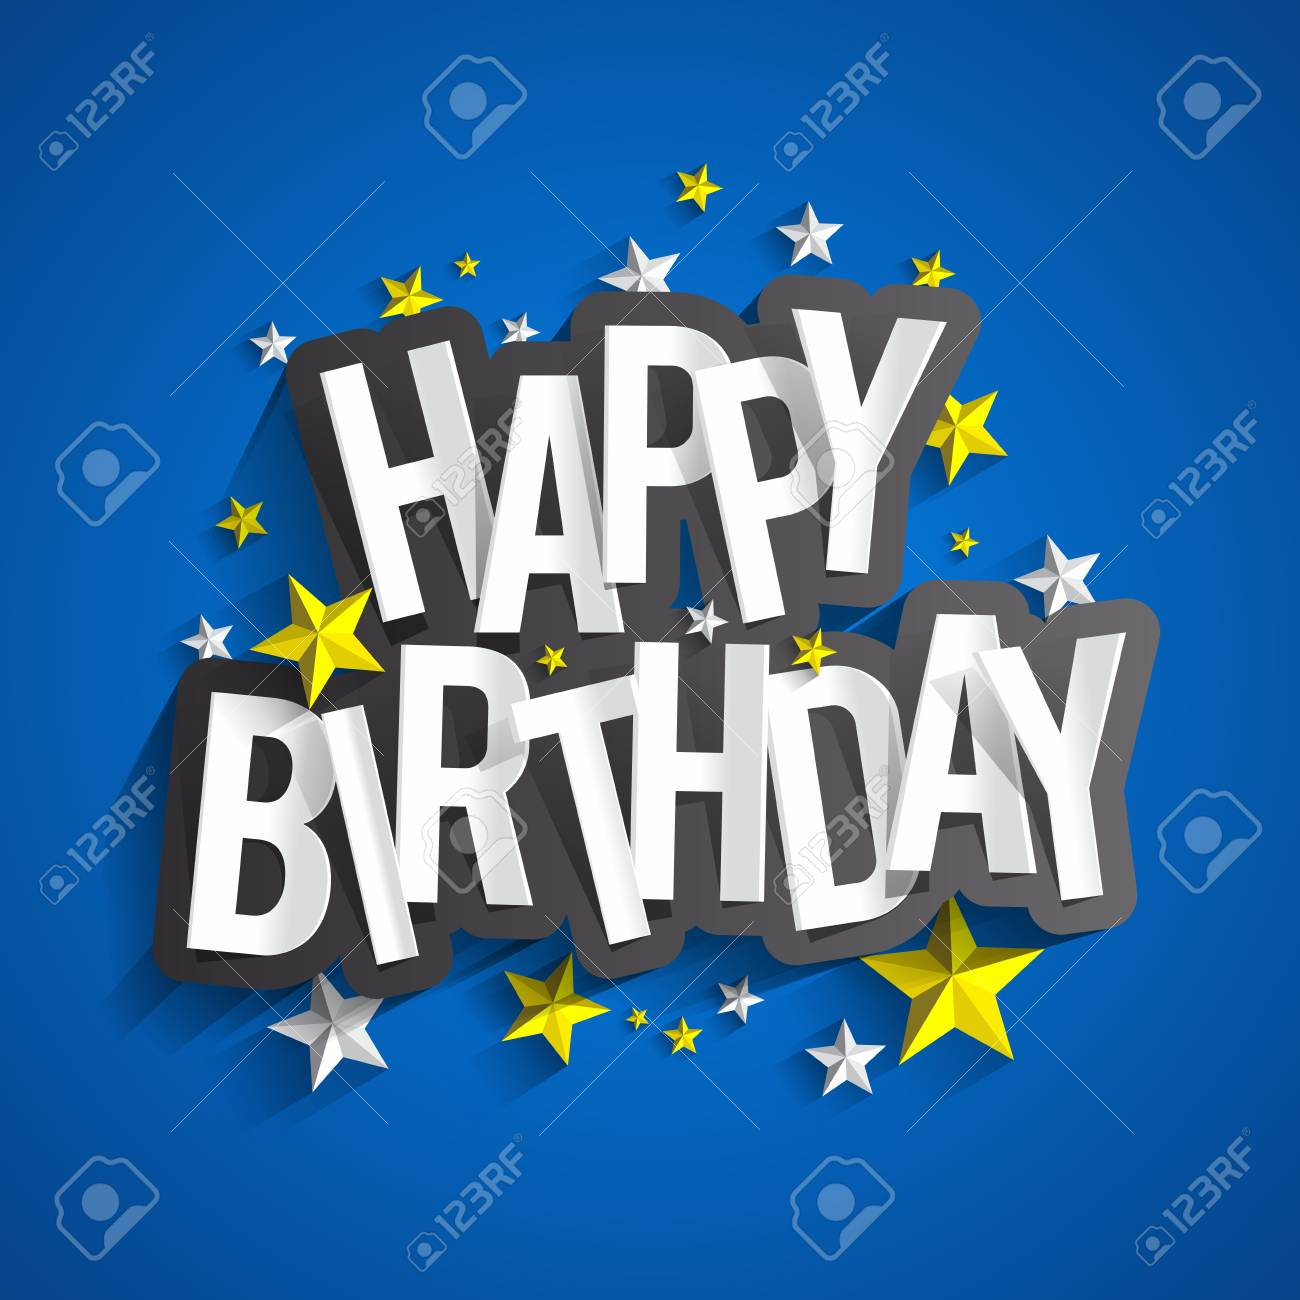 Colorful Happy Birthday Greeting Card Vector Illustration Royalty